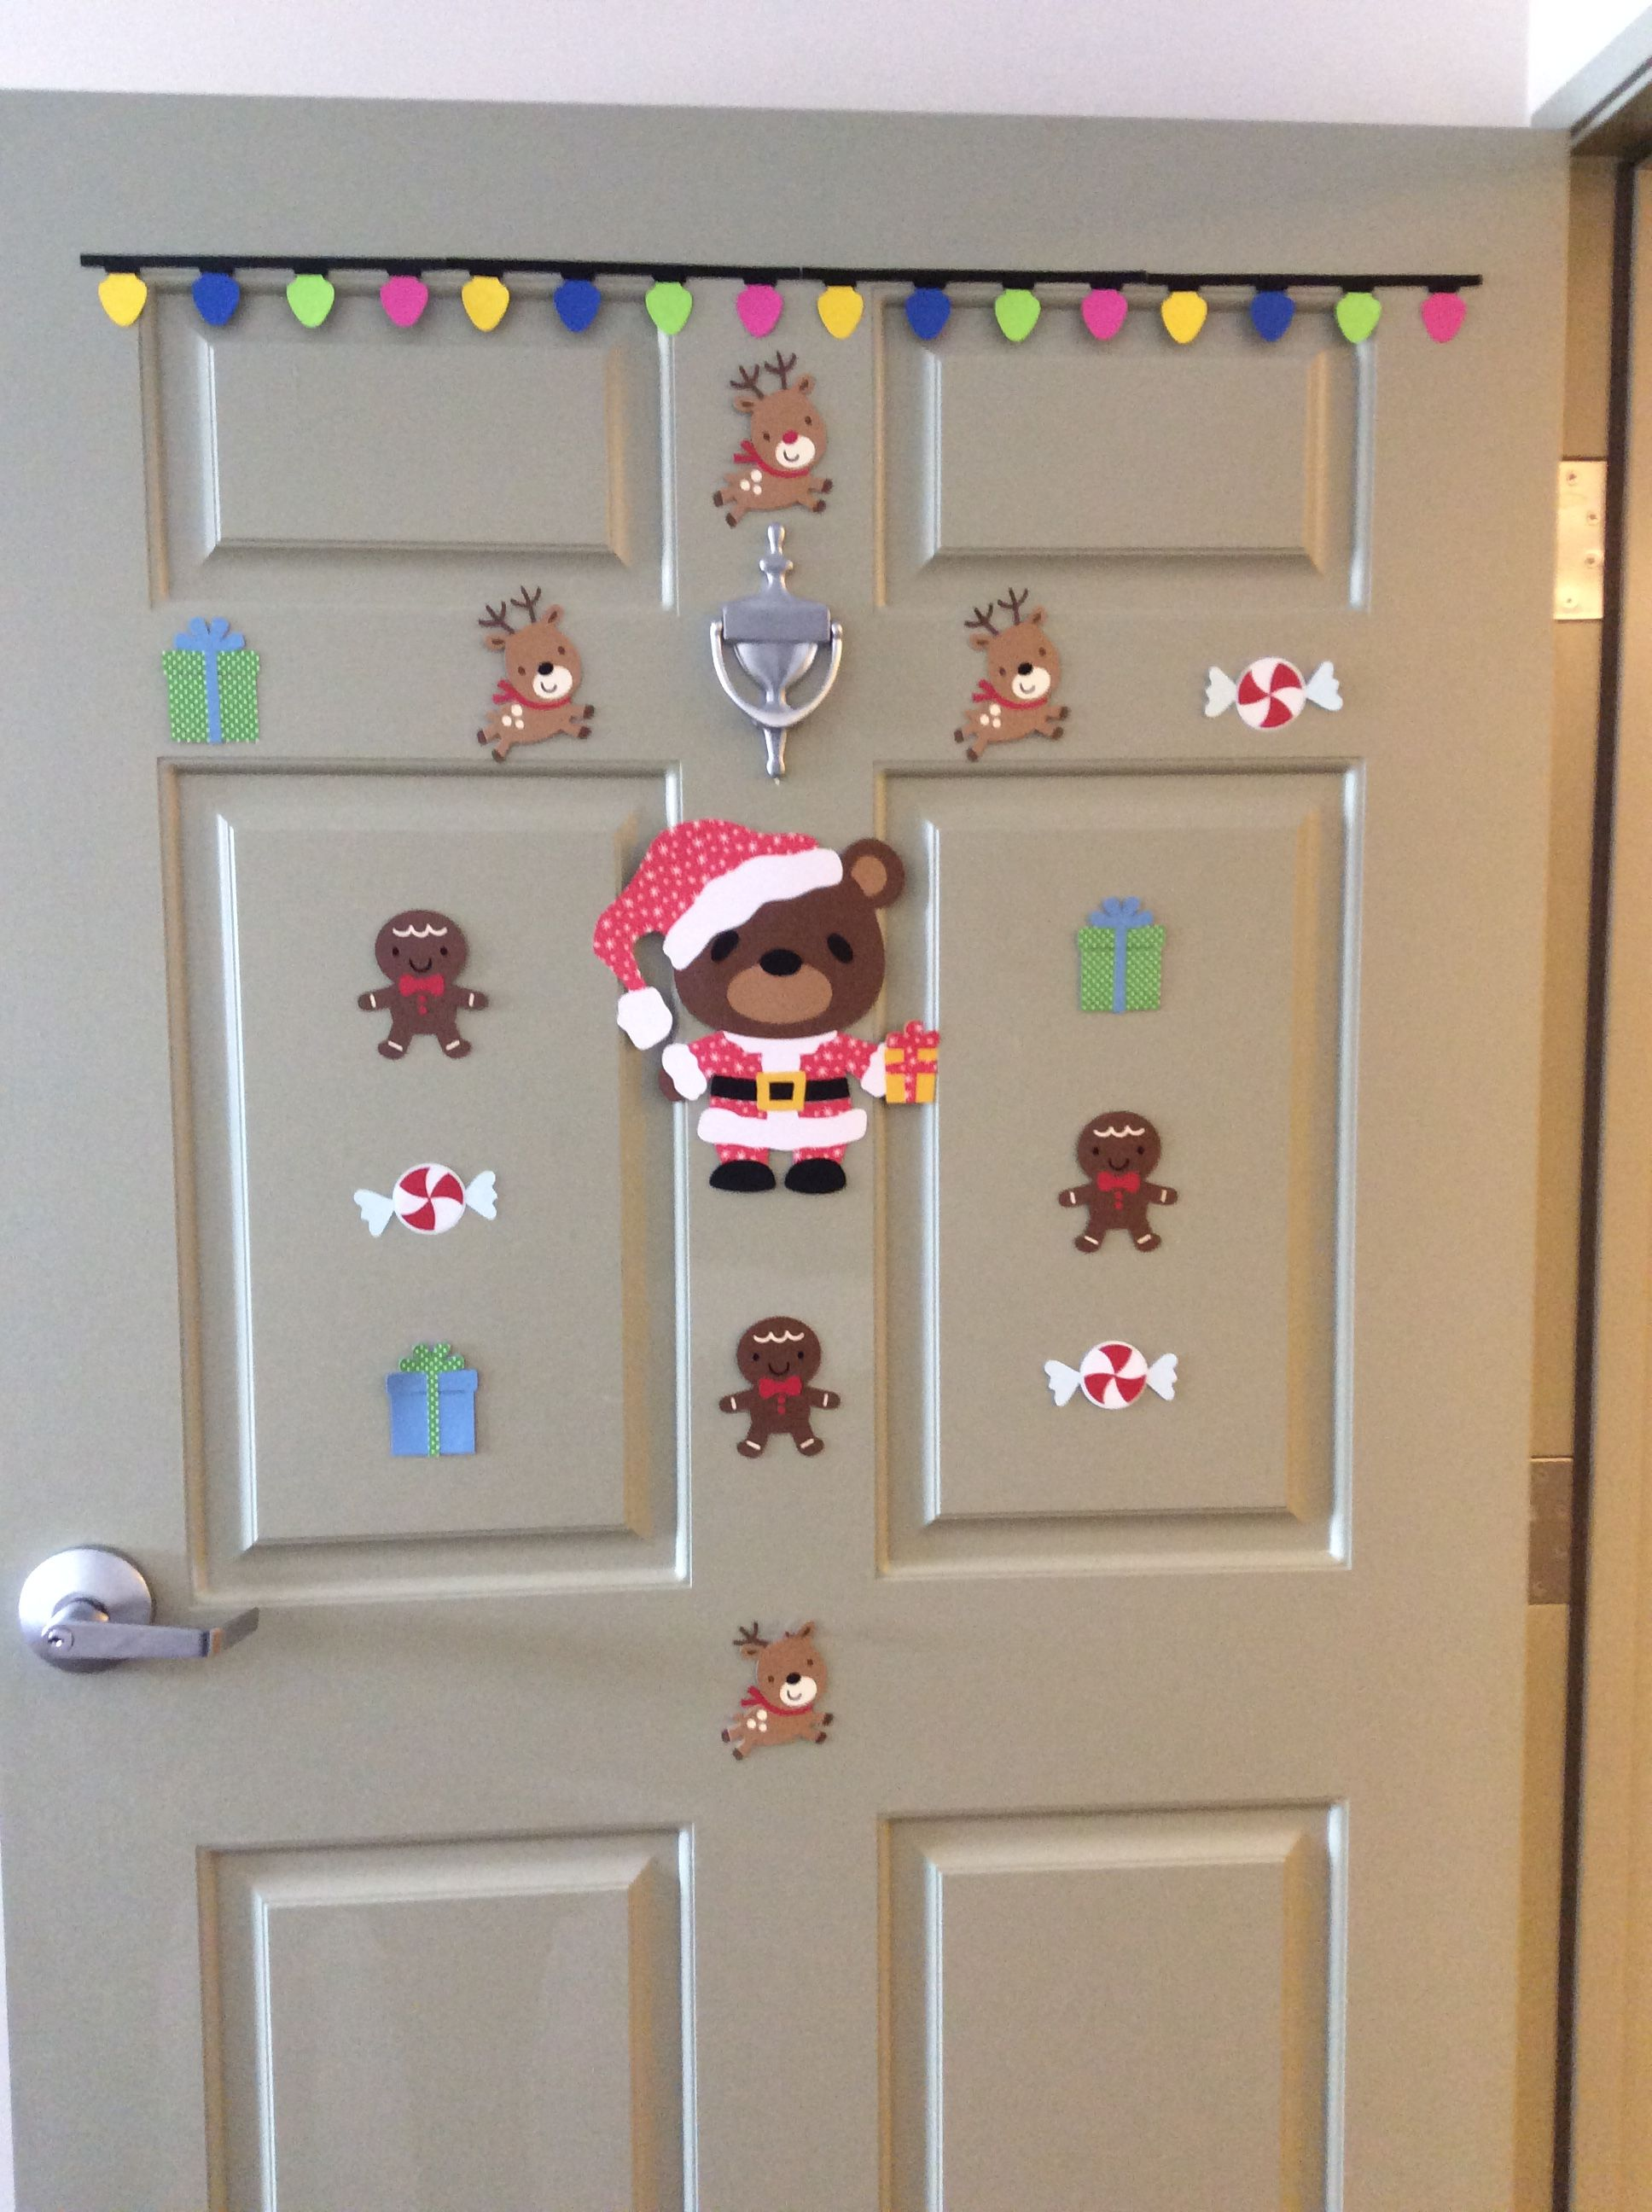 December door decorations at an assisted living facility